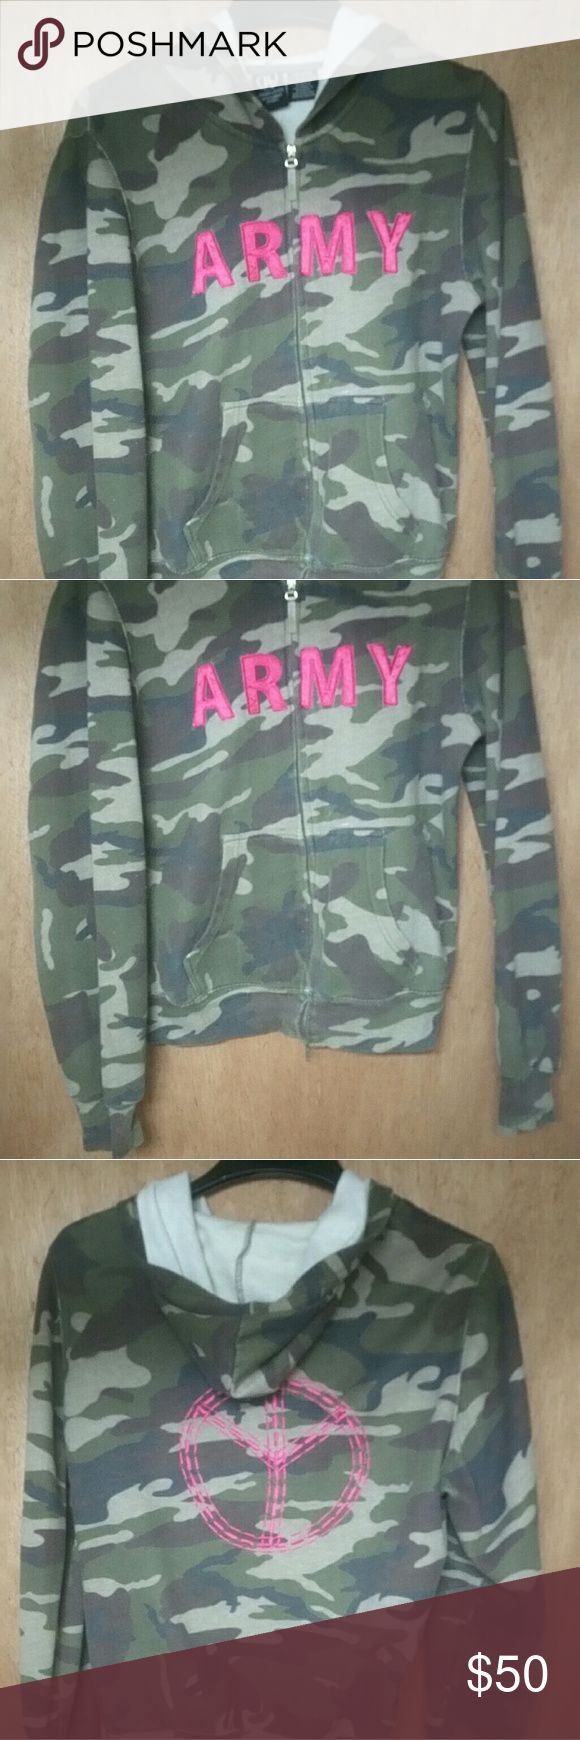 Army camo peace full zip hoodie L vintage army camo peace full zip hoodie L Nice shape for its age. Worn very few times. Bright fuscia pink embroidered onto camo.  Price firm Tops Sweatshirts & Hoodies